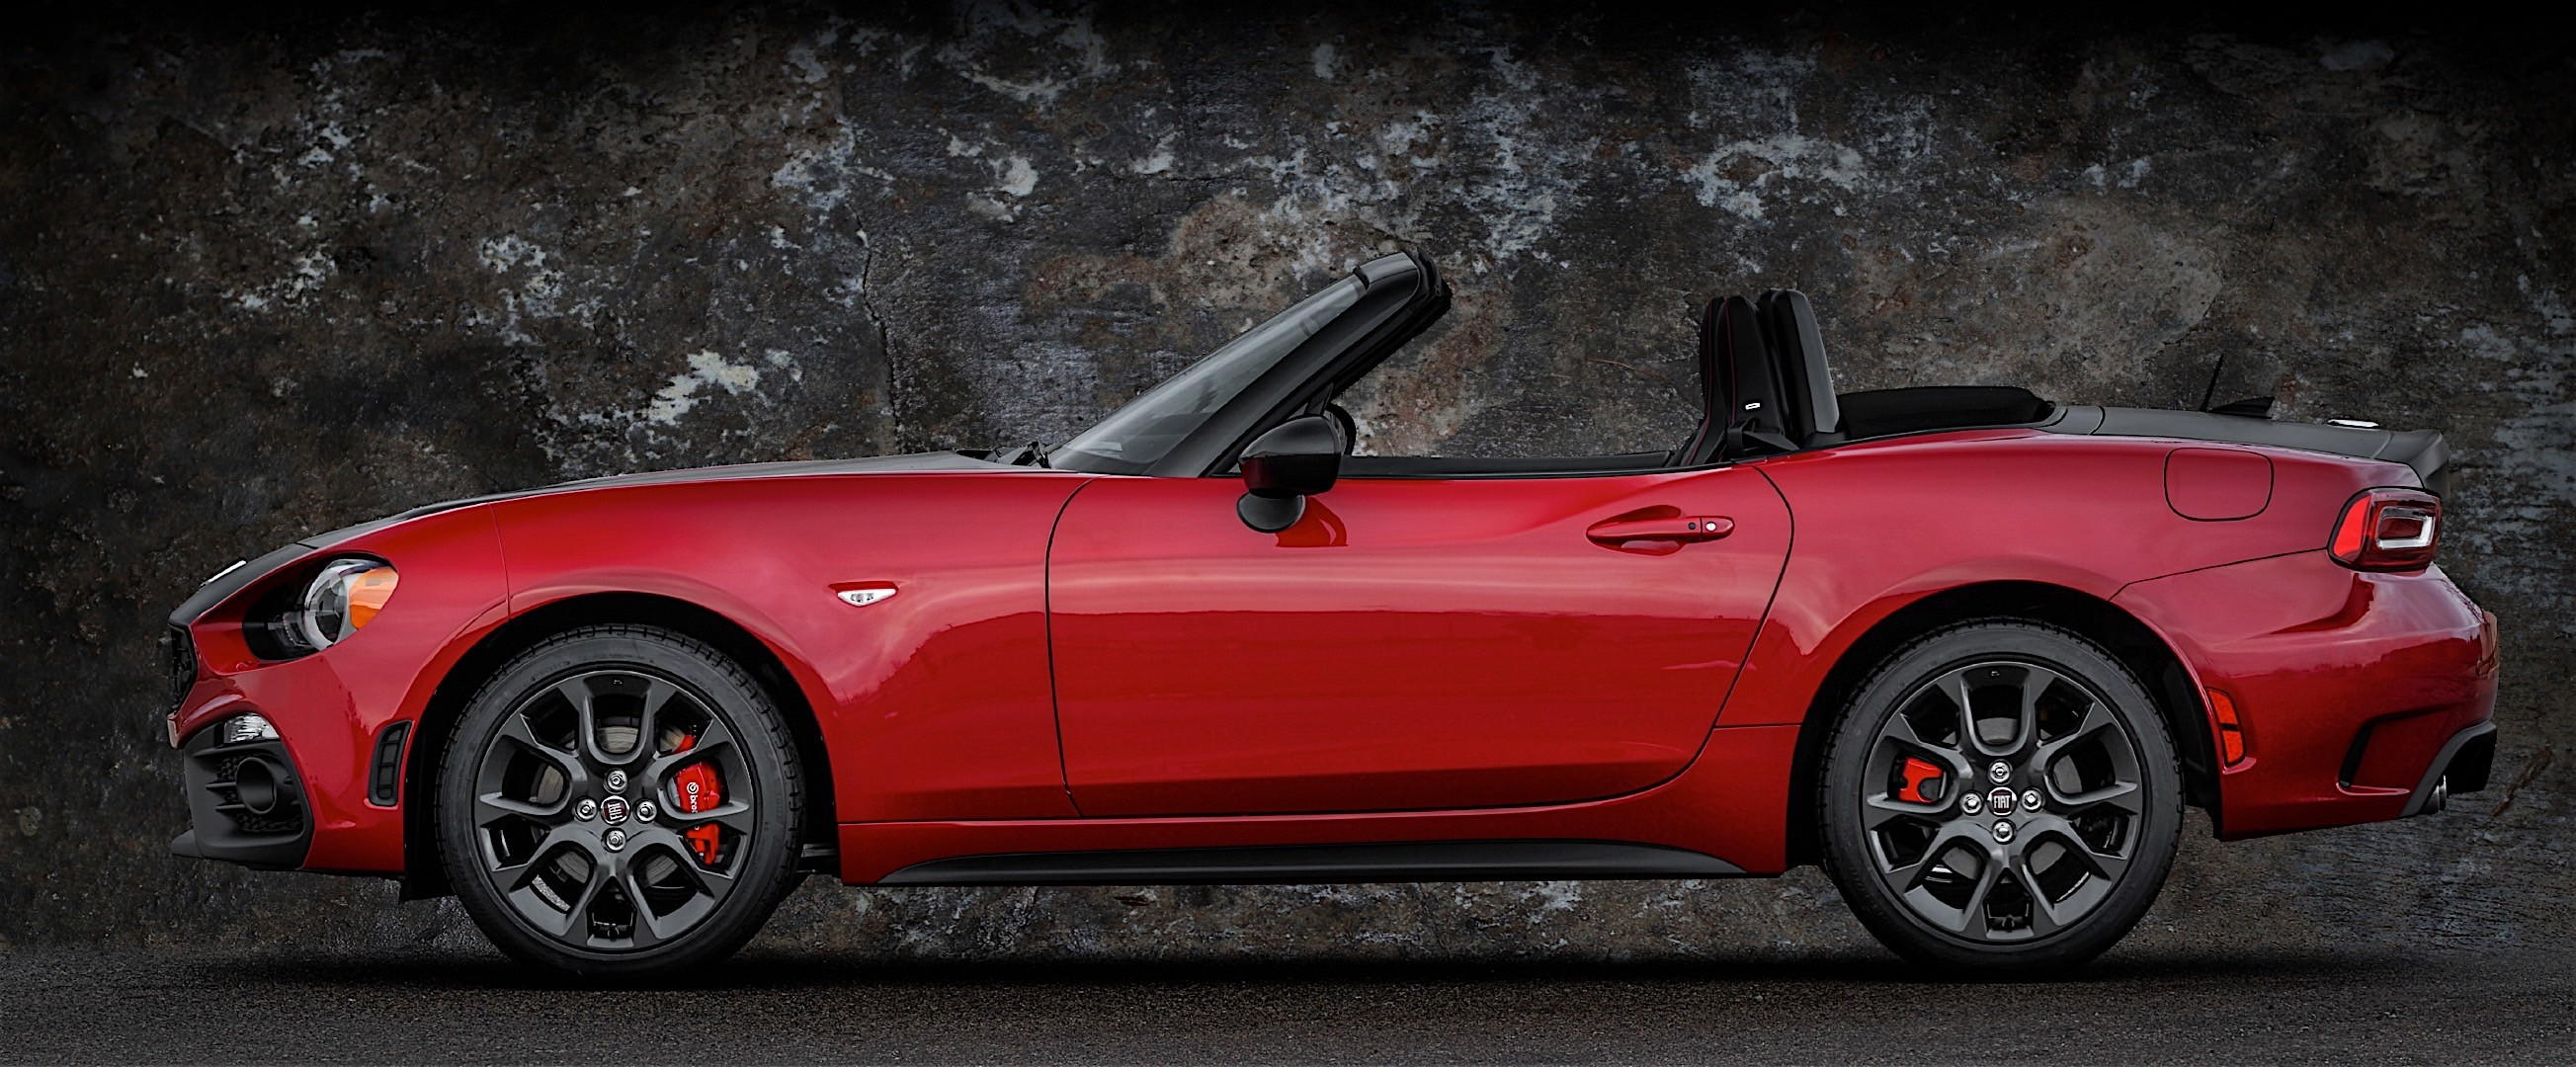 Fiat 124 Abarth Spider 2017 Autoevolution